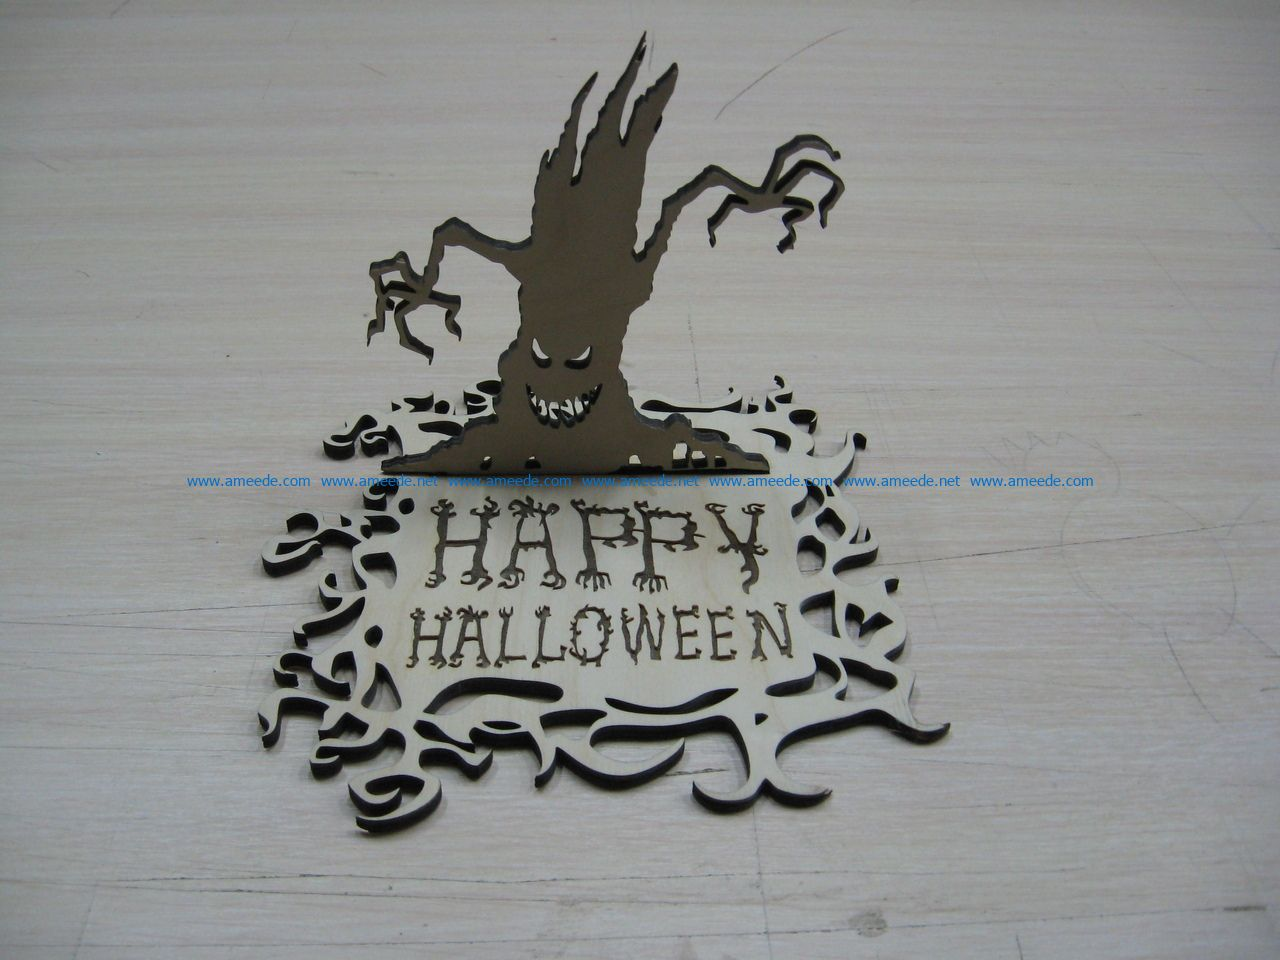 Happy Halloween file cdr and dxf free vector download for Laser cut